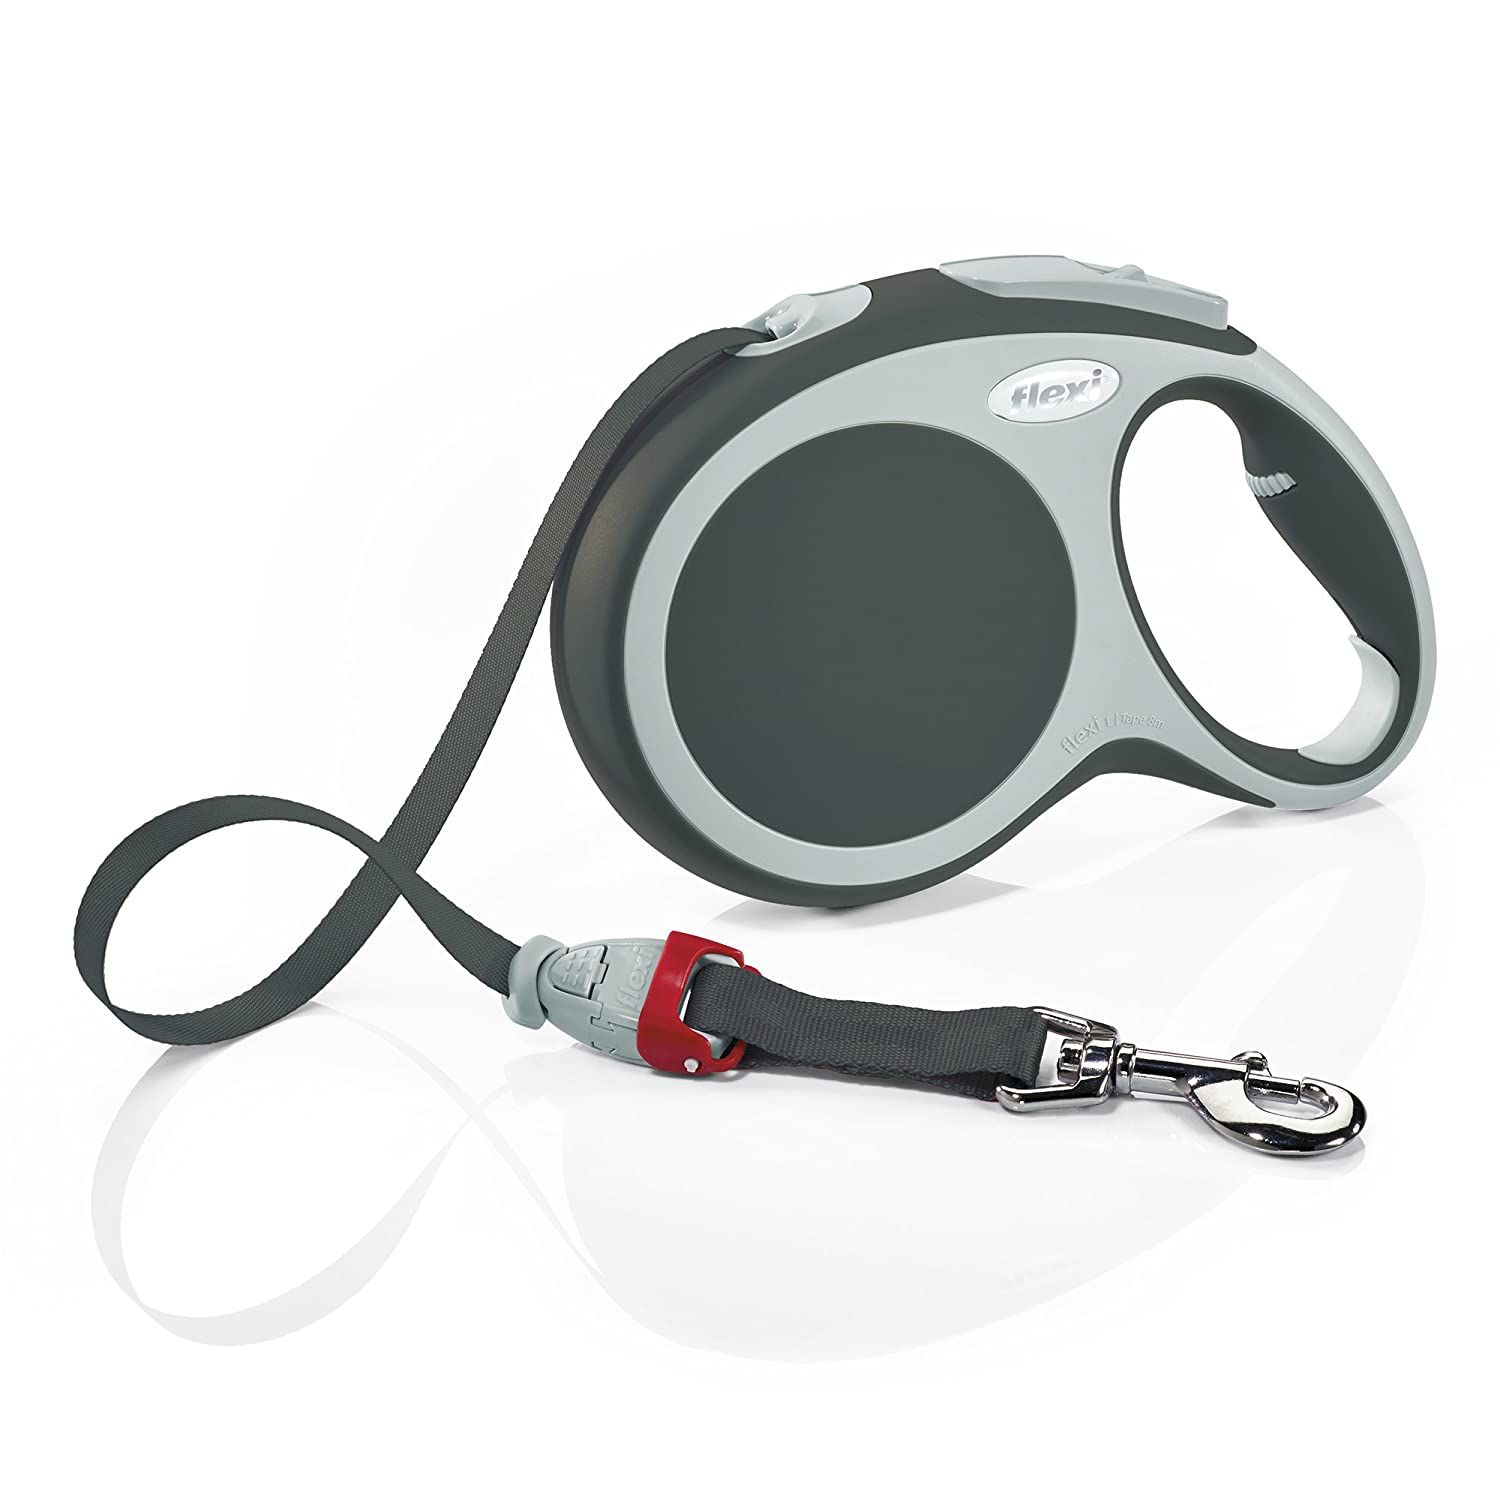 Best Retractable Leash For Large Dog